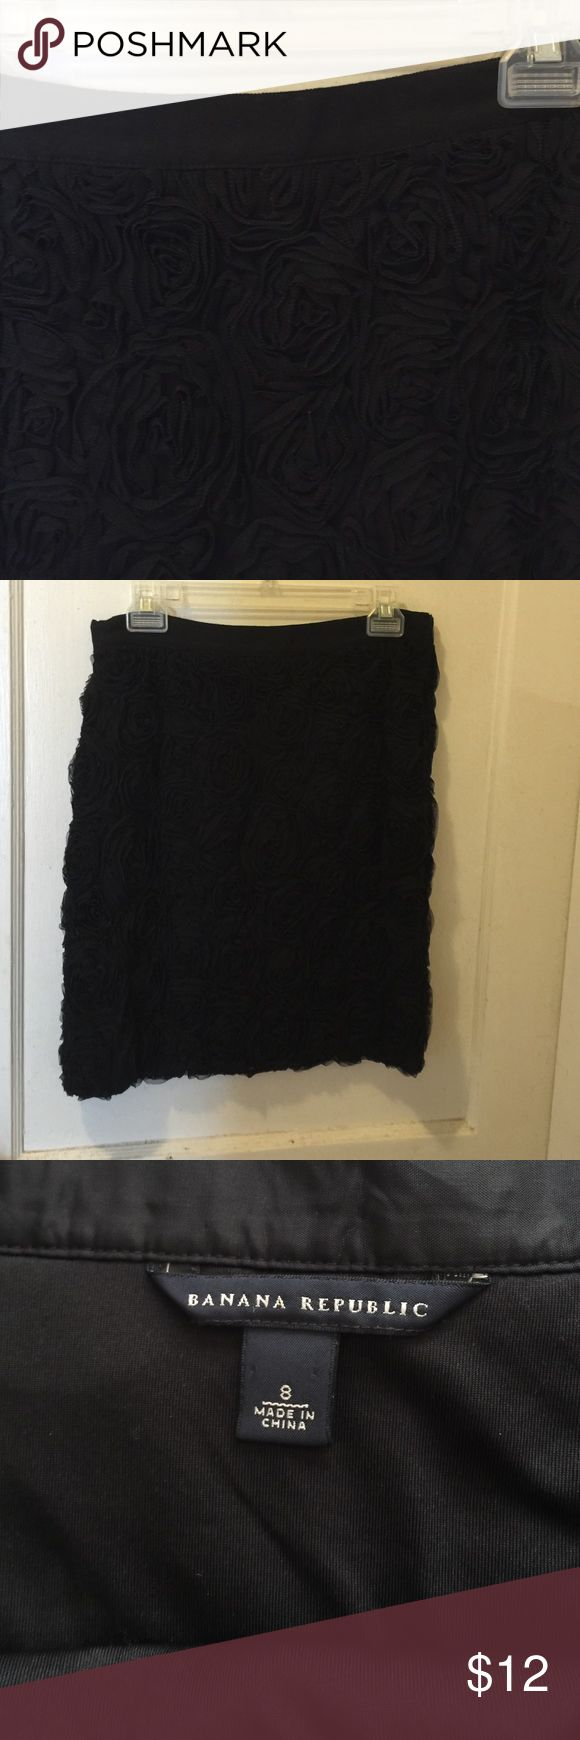 Banana Republic dressy skirt - 8 Gorgeous skirt in excellent used condition.  Covered with tulle rosettes, grosgrain ribbon waistband, side zipper, fully lined.  So perfect for the upcoming seasons! Banana Republic Skirts Midi